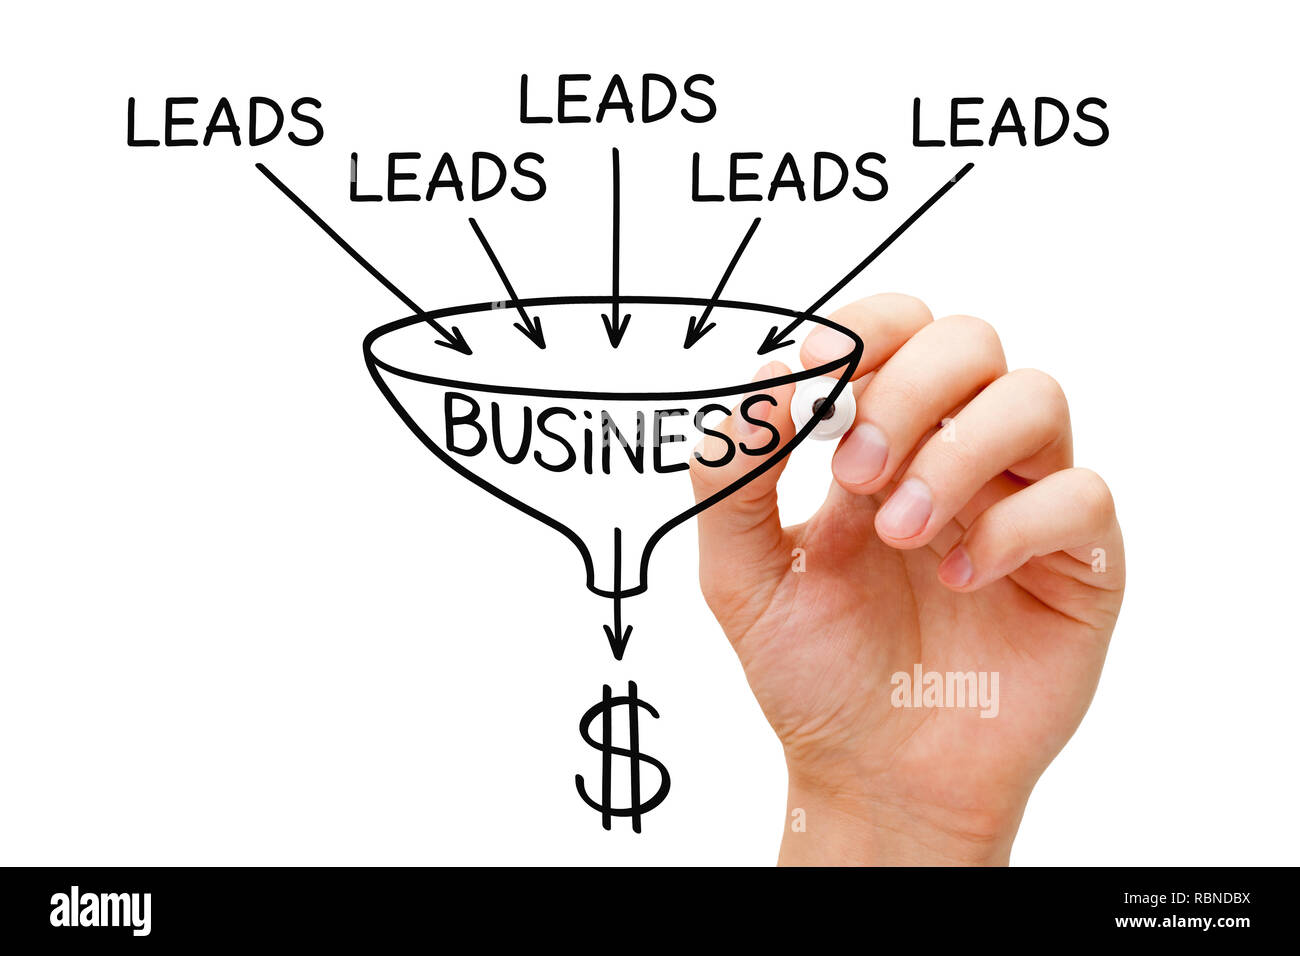 Hand sketching Lead generation business sales funnel concept with marker on transparent wipe board. - Stock Image